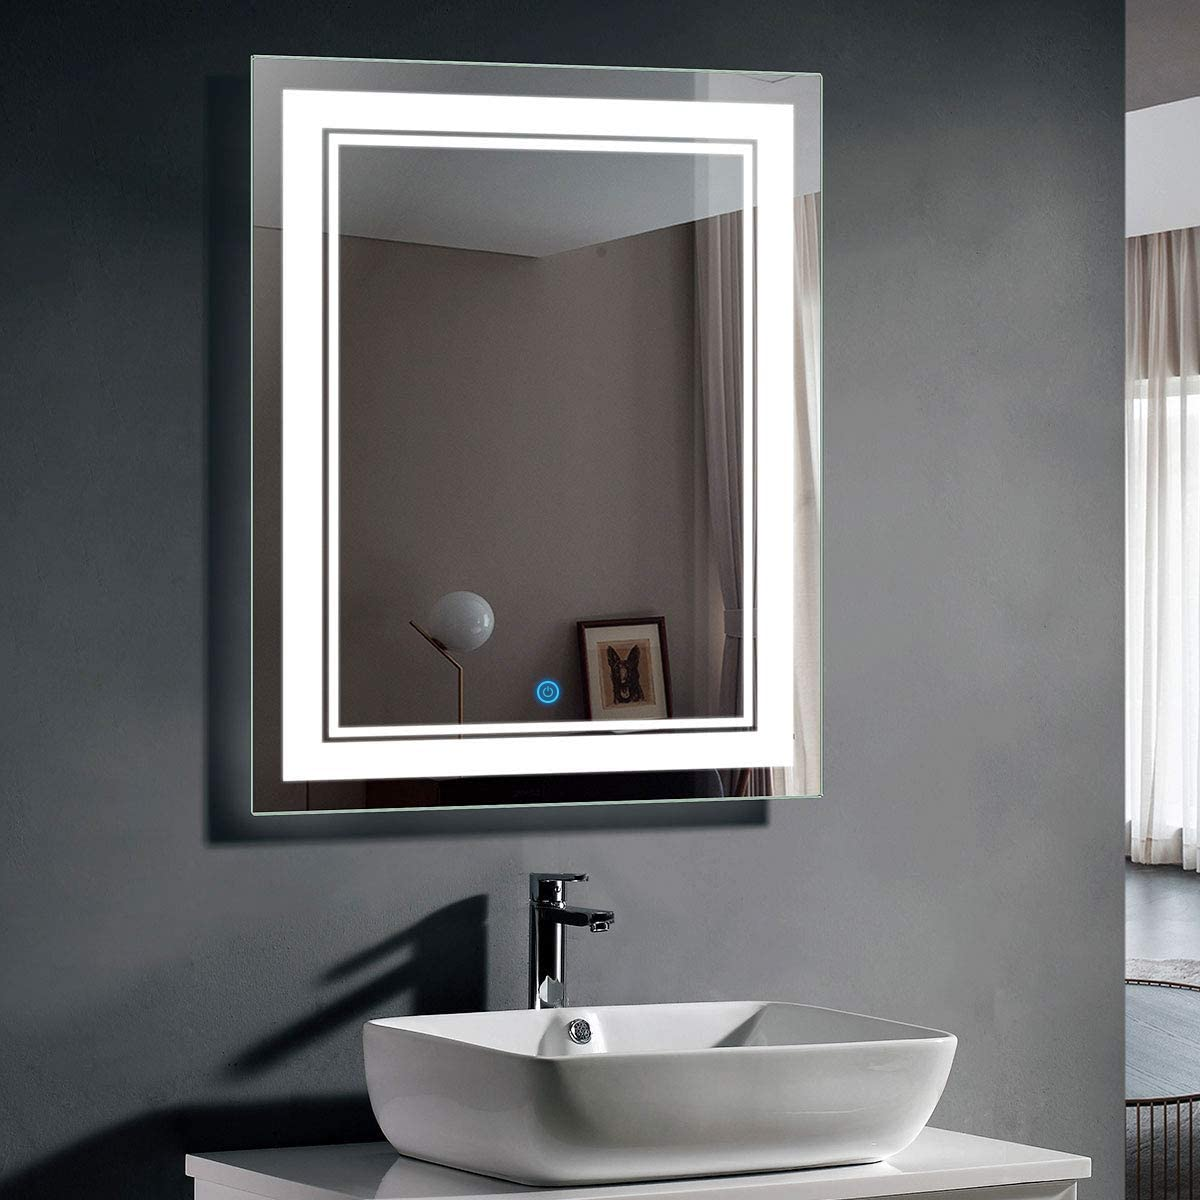 Vertical LED Lighted Vanity Bathroom Silvered Mirror with Touch Button